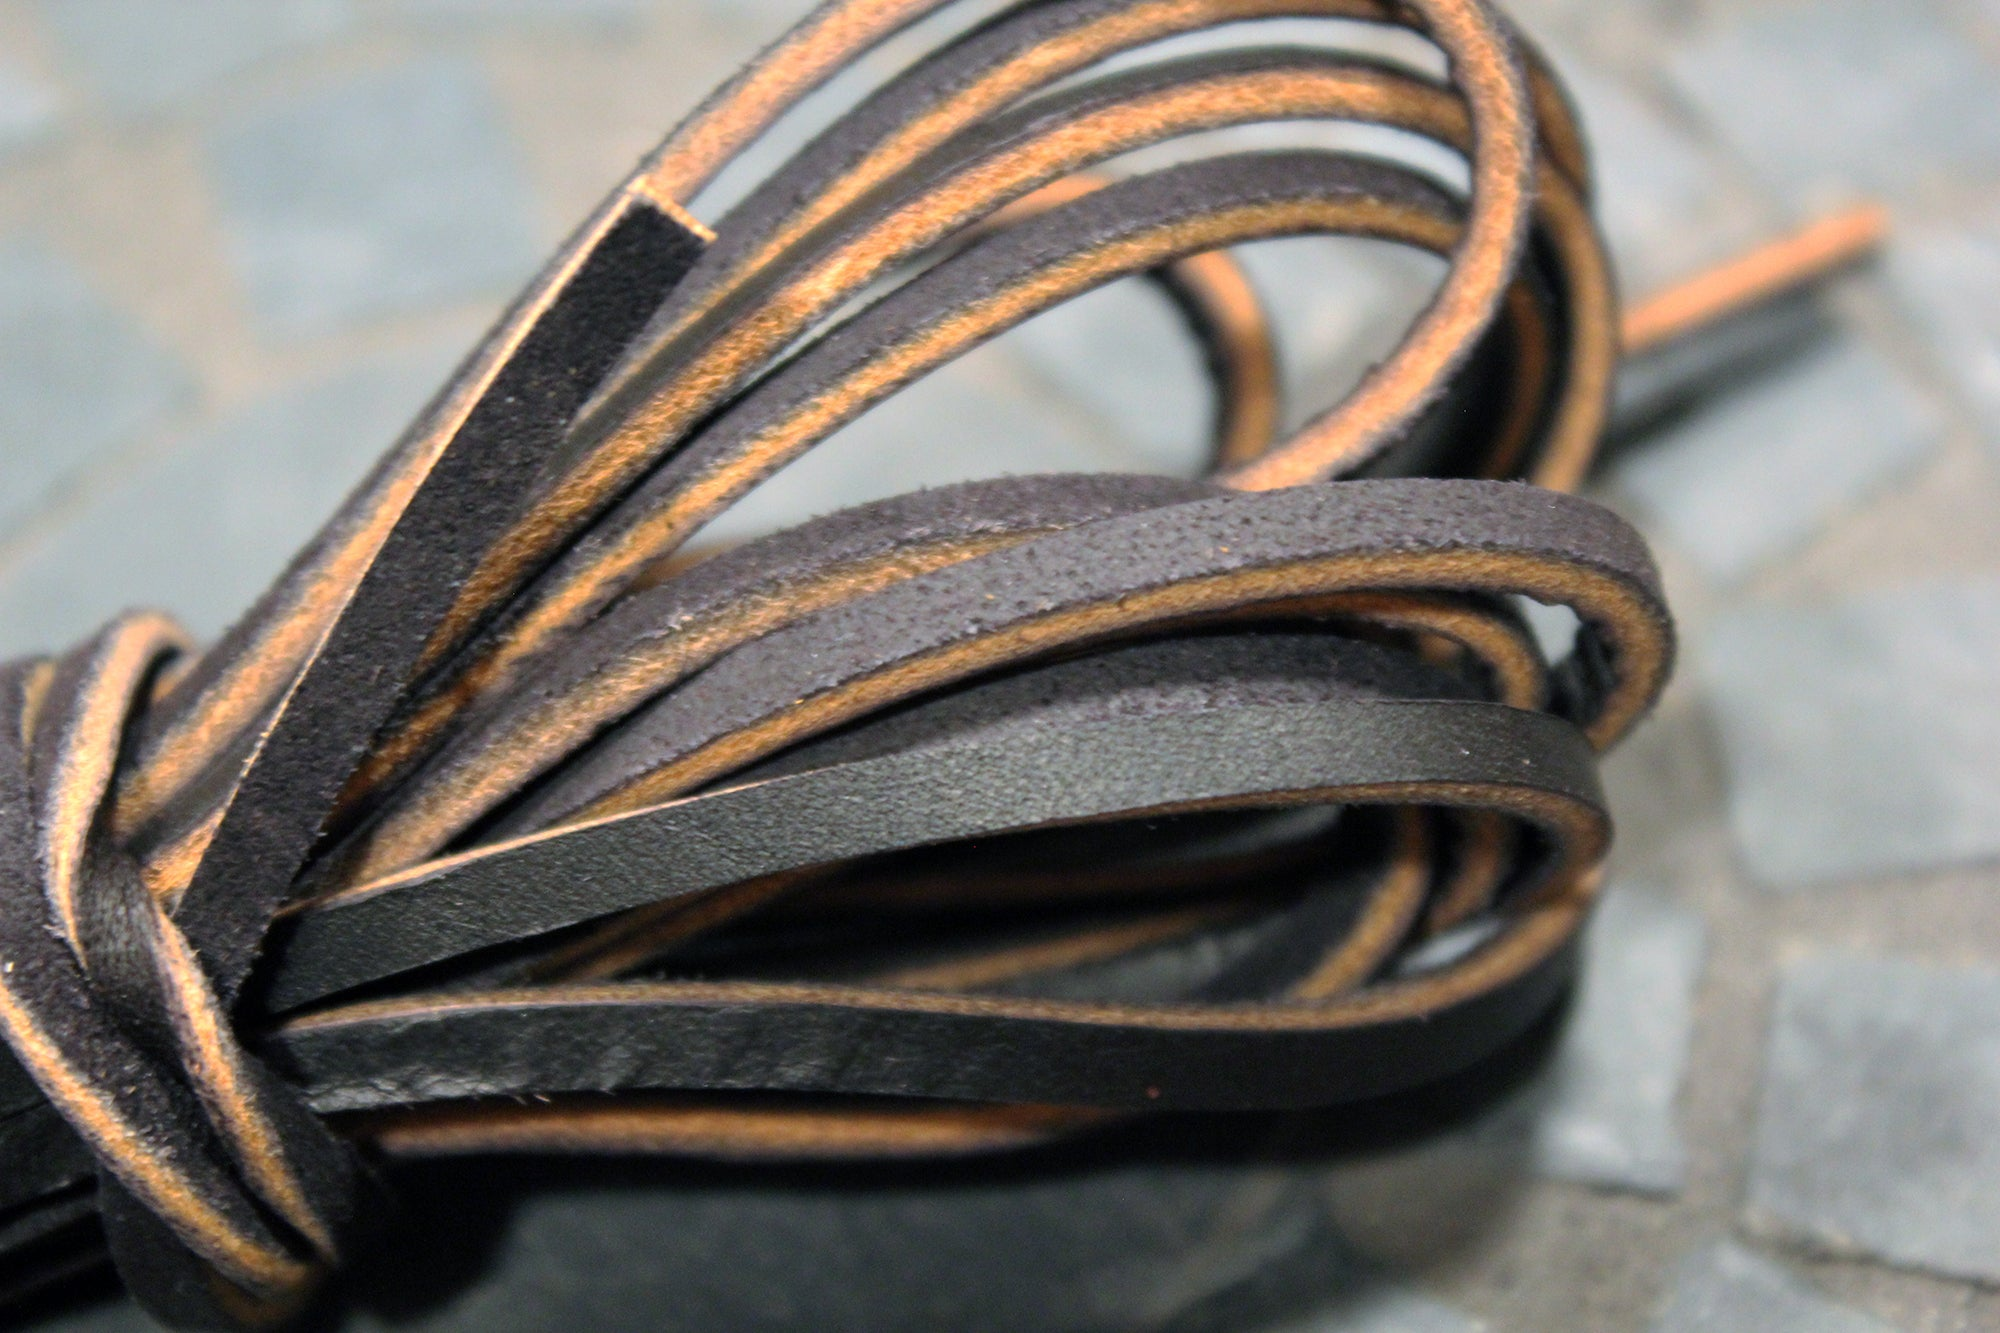 72 Rawhide Leather Boot Laces Guarded Goods